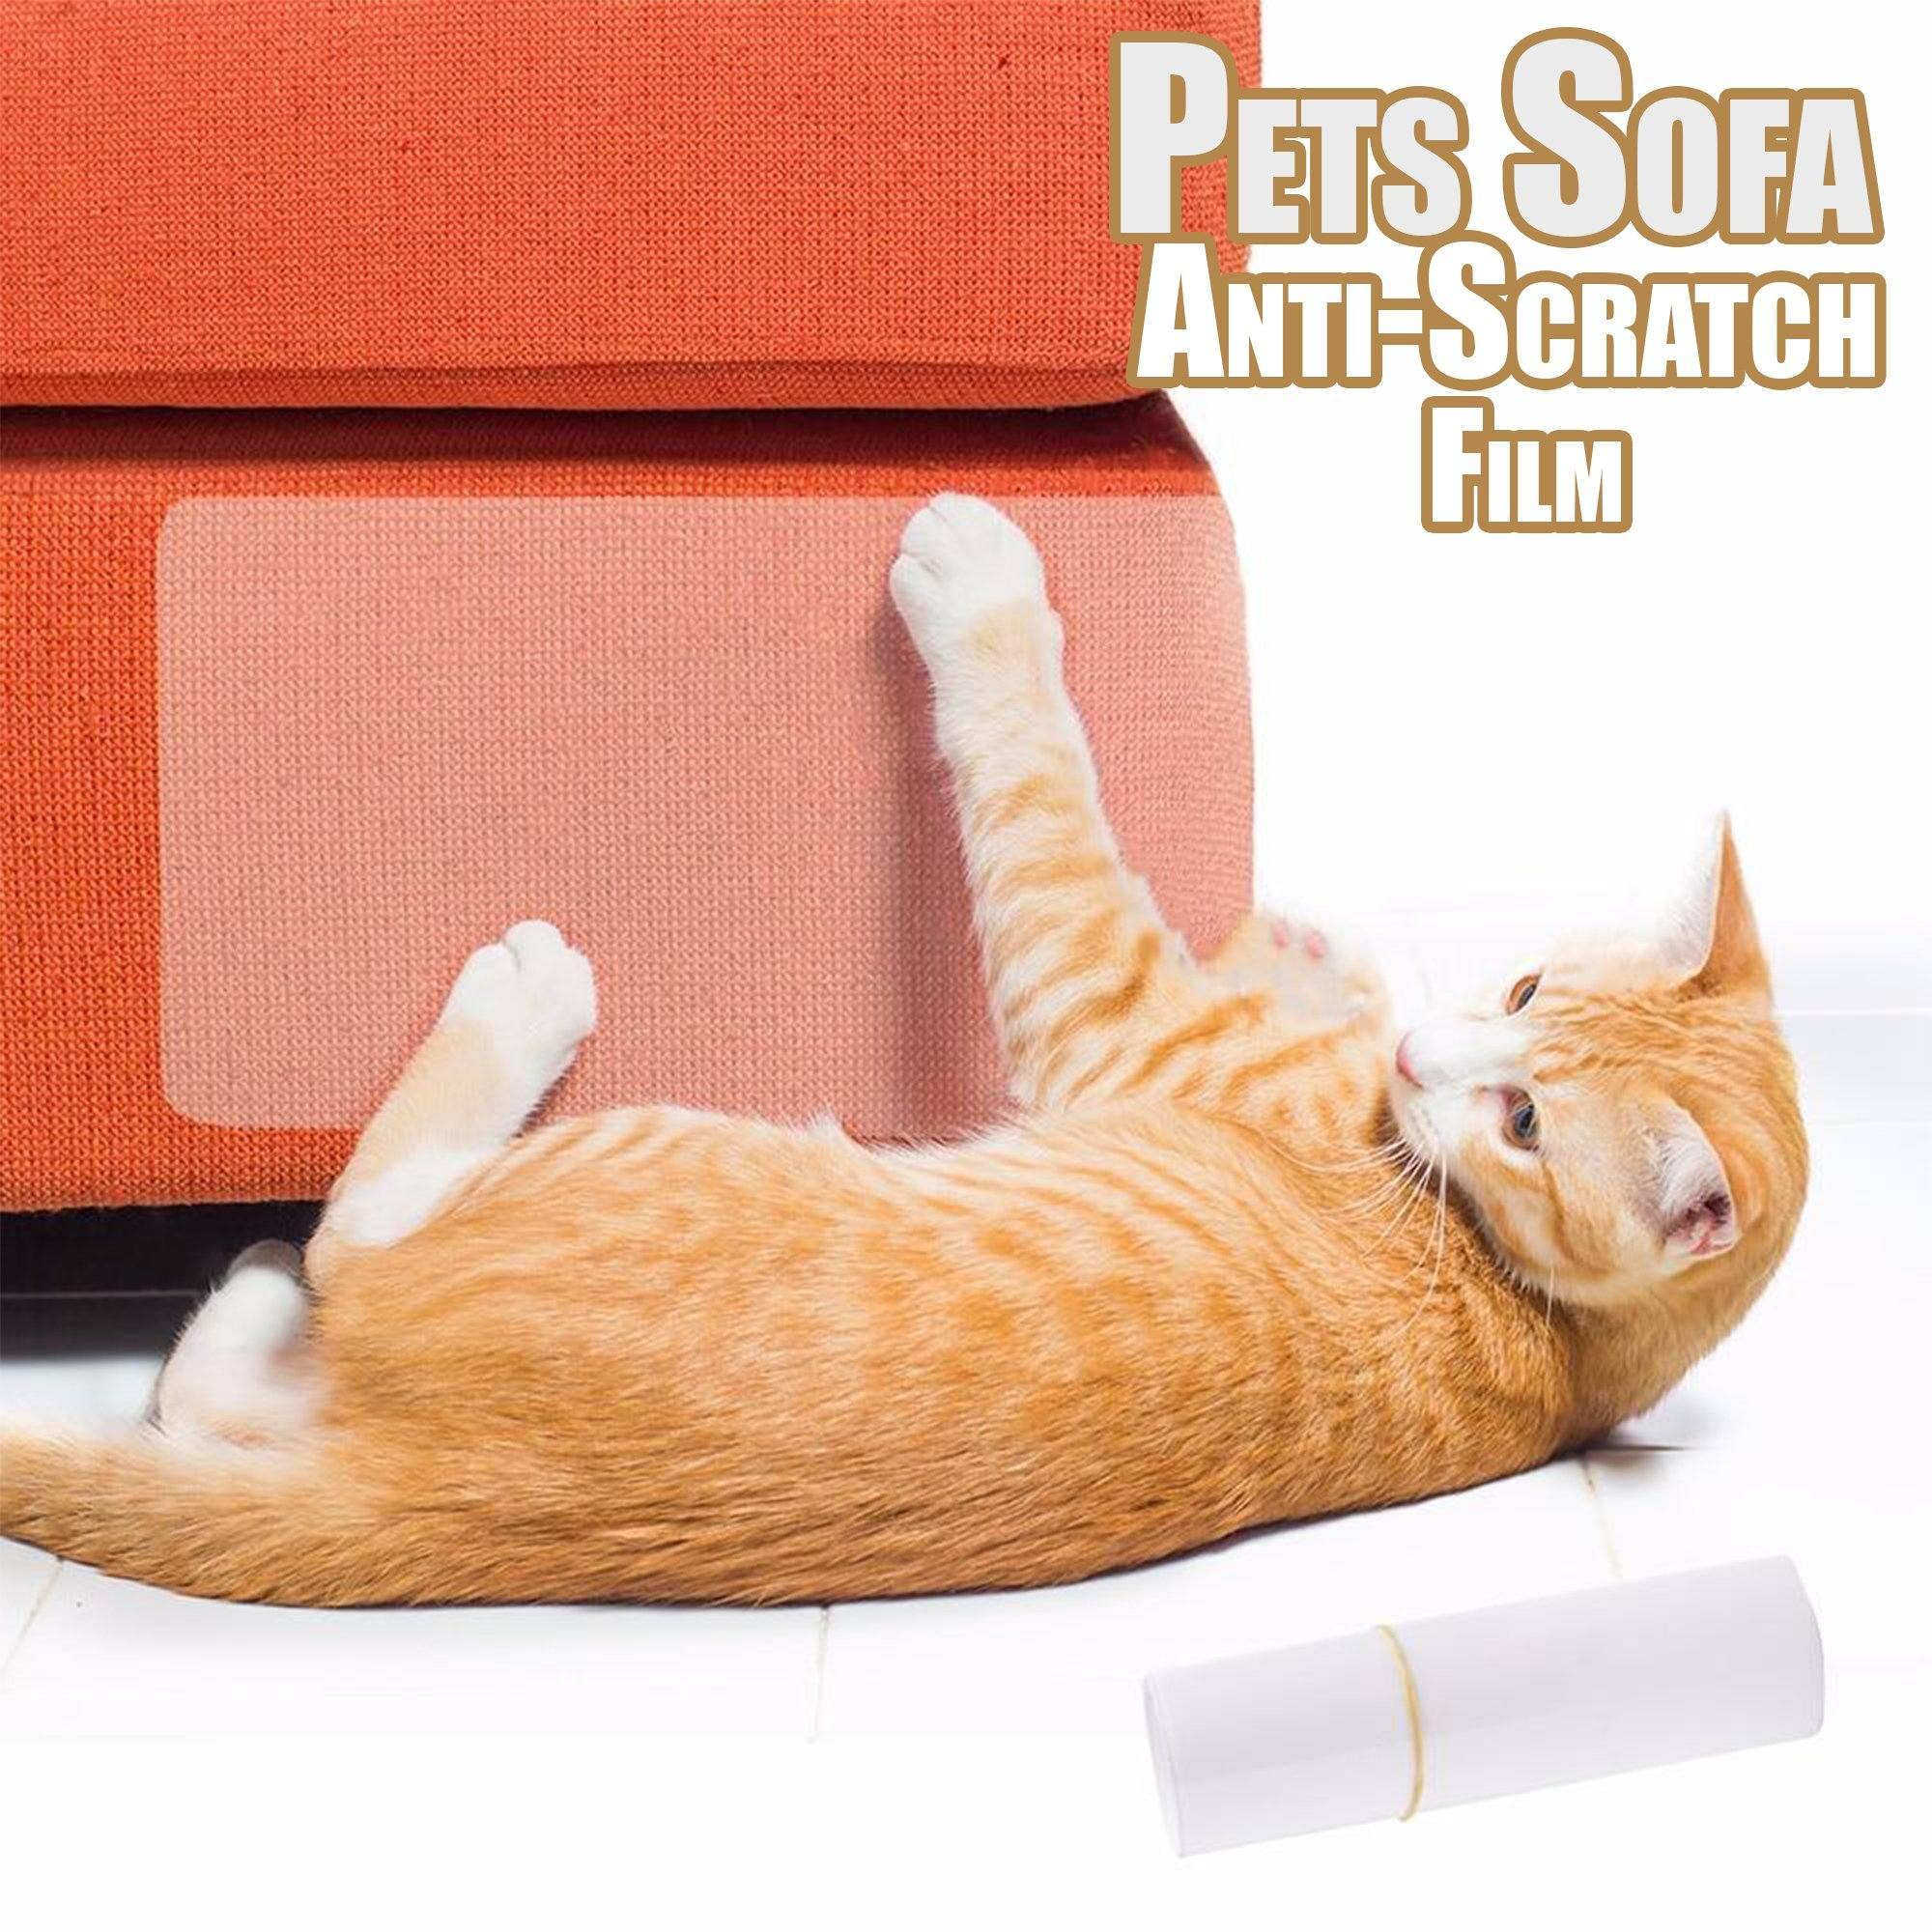 Pets Sofa Anti-Scratch Film